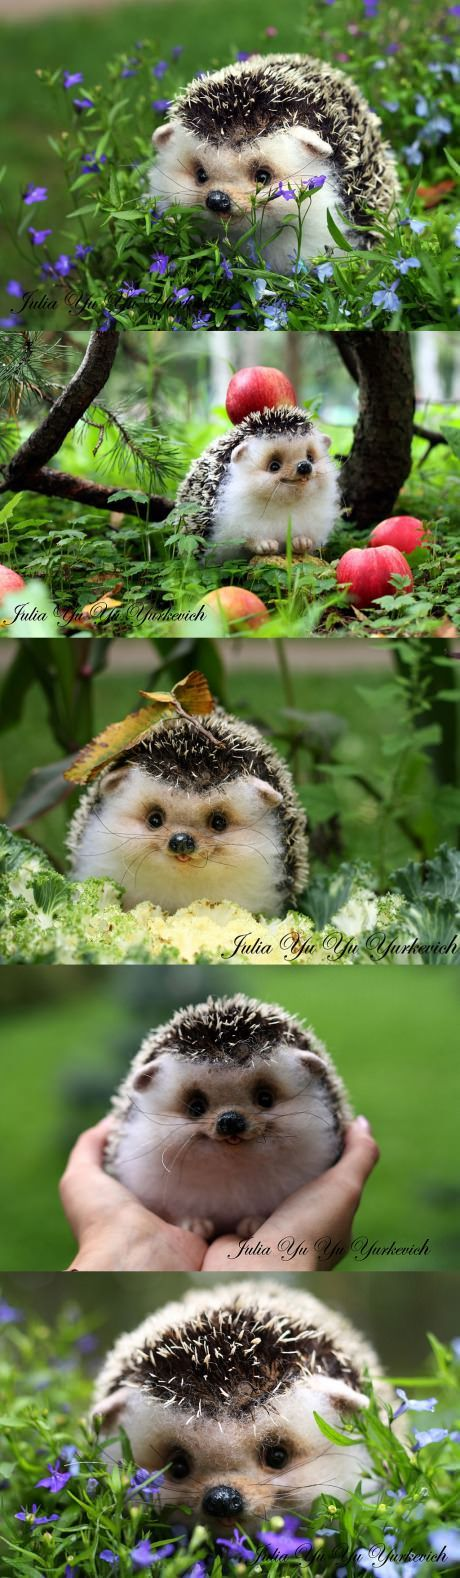 OMG this hedgehog: